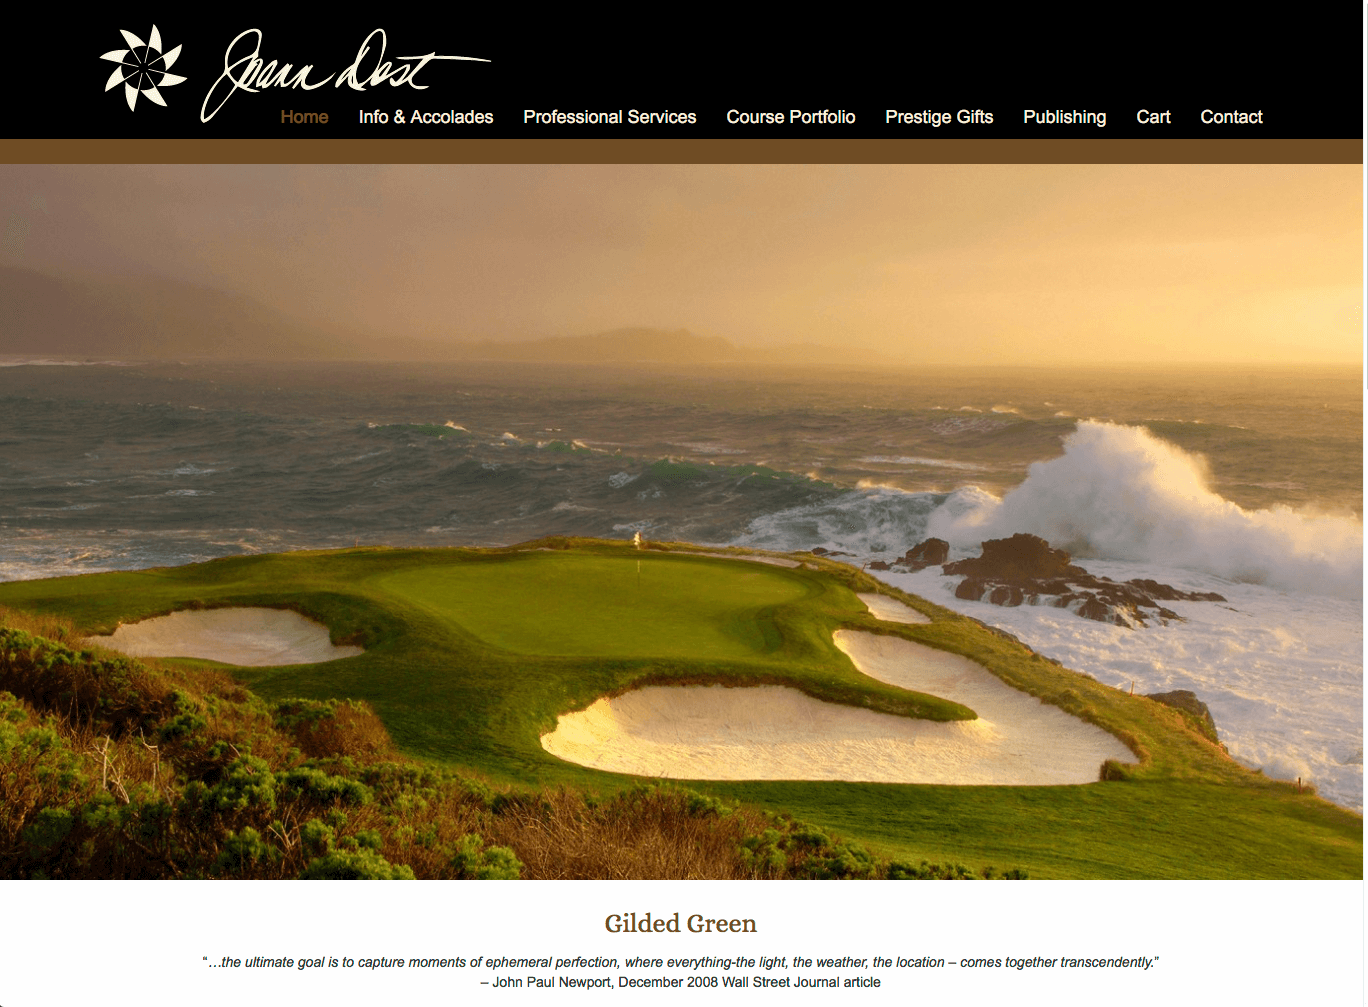 Joann dost fine art golf photography website moore for Fine art photography sites